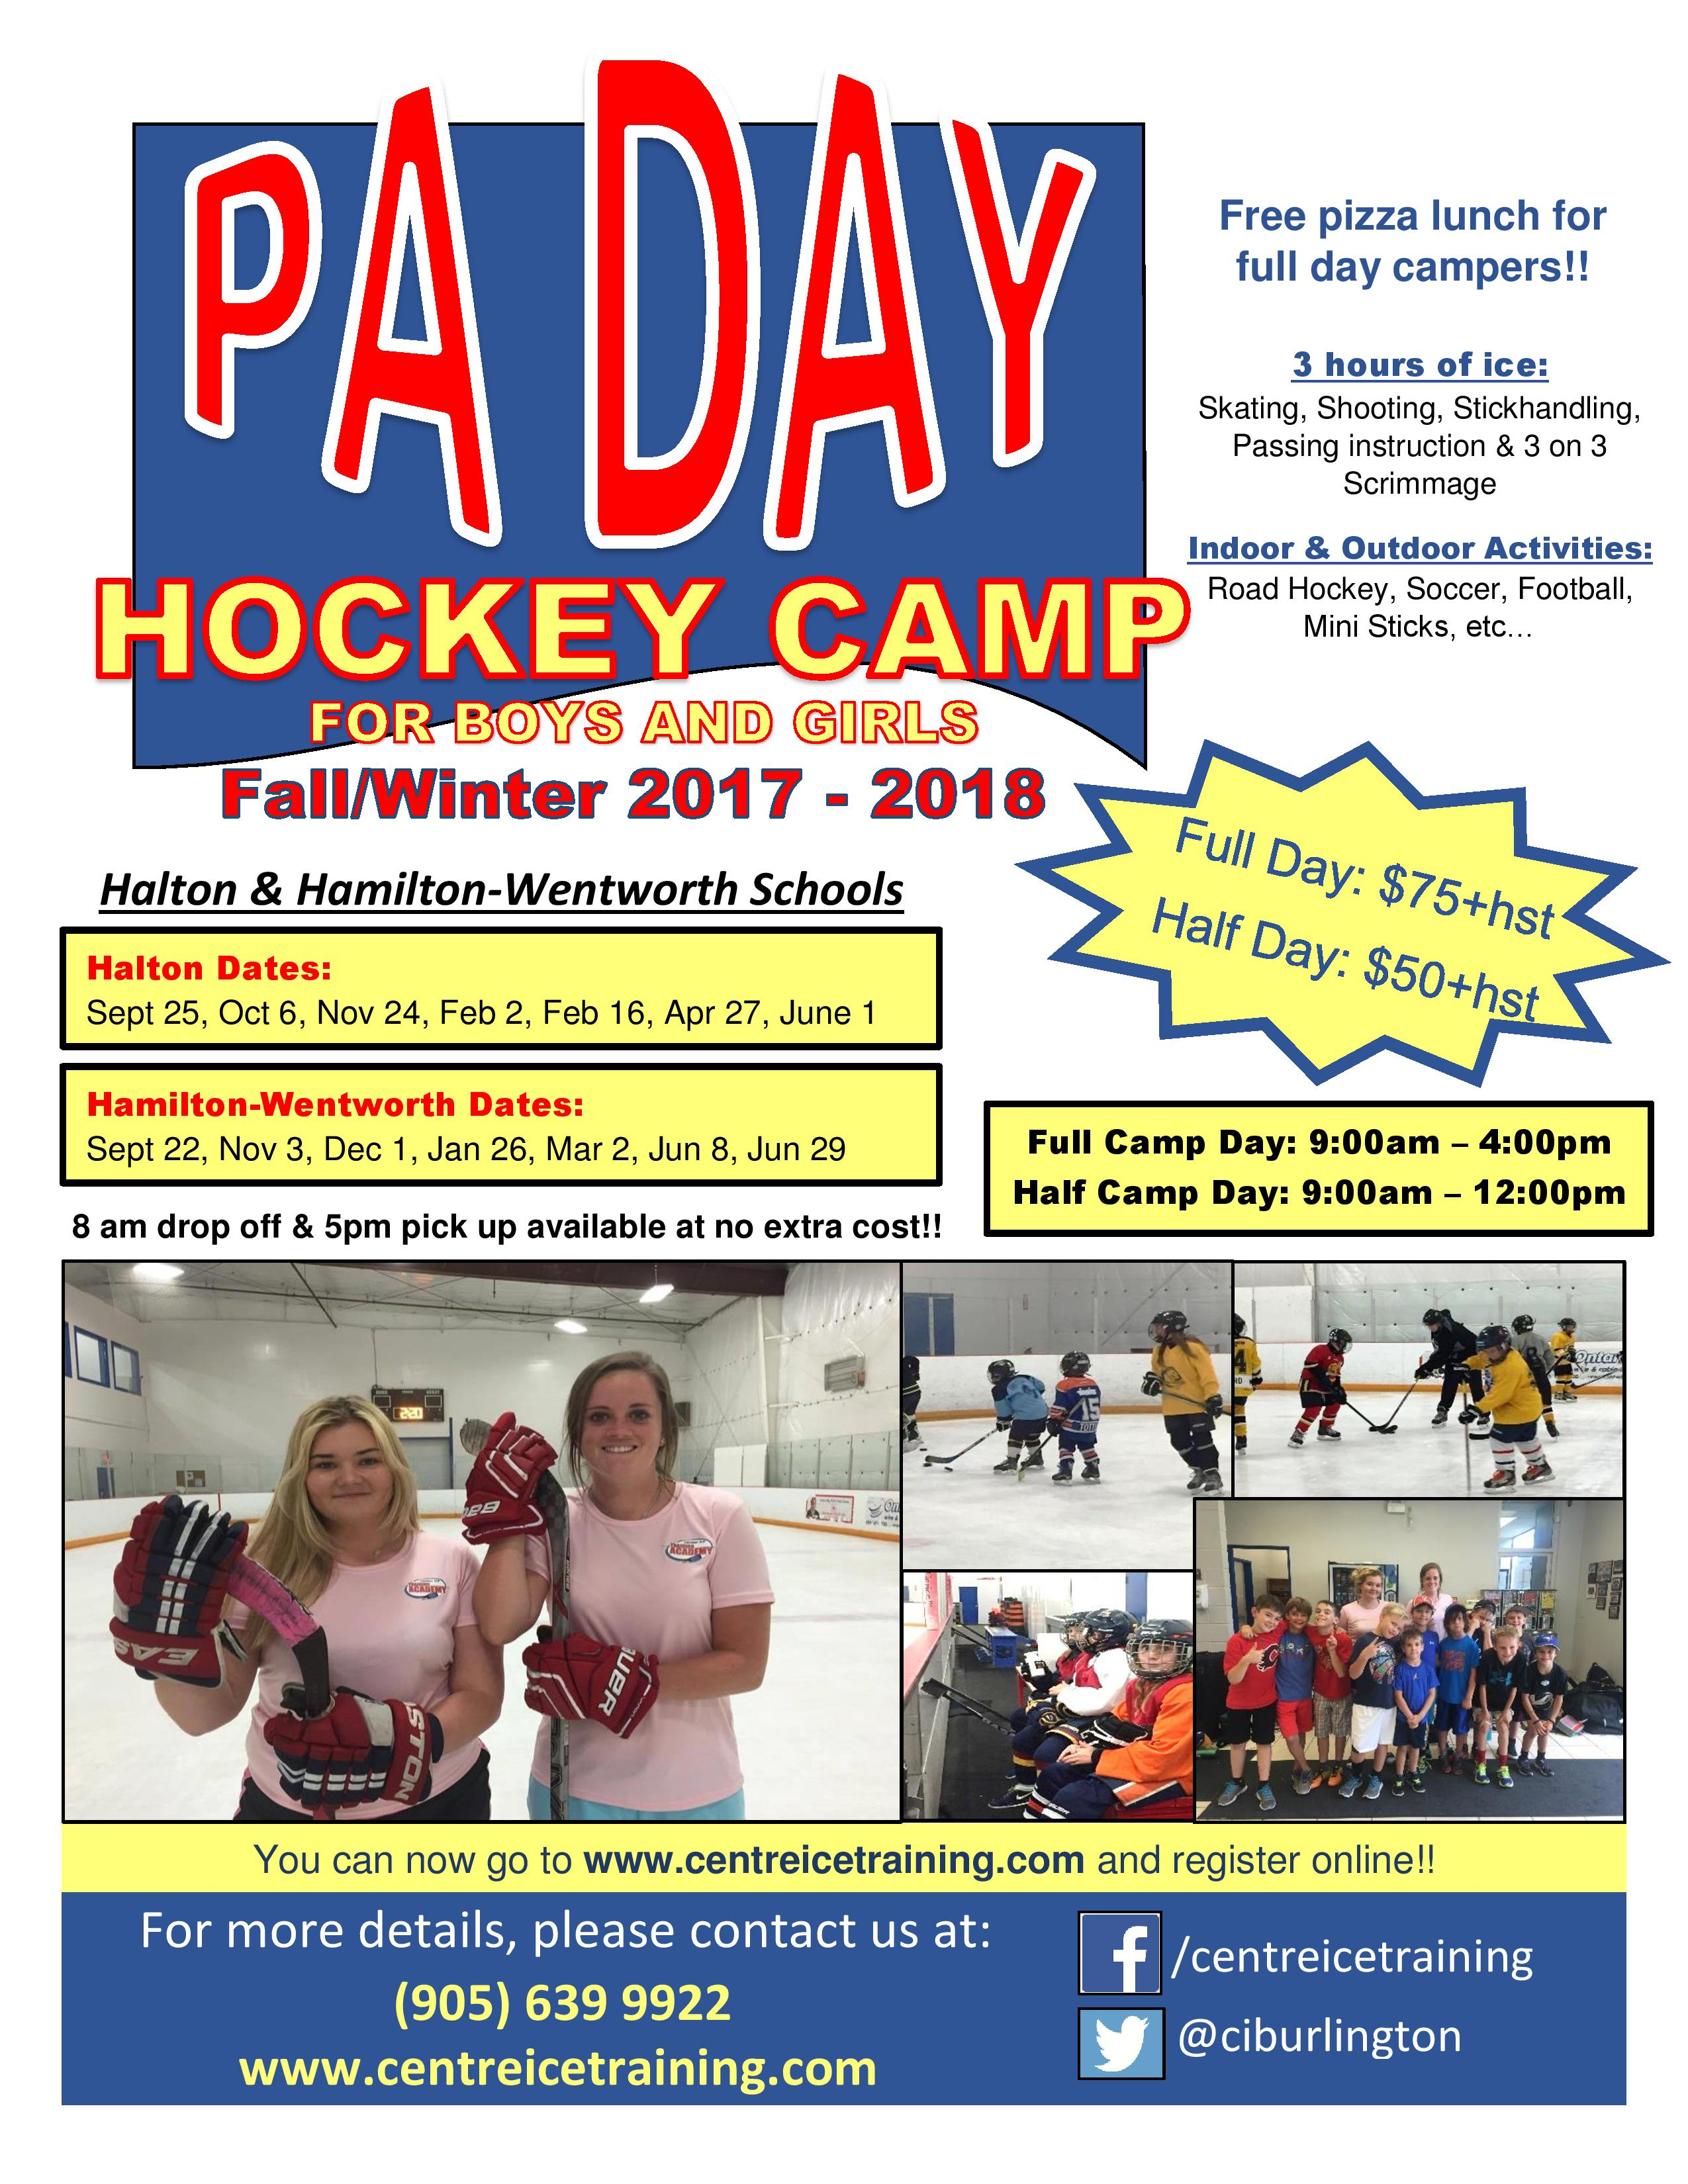 PA Day Hockey 2017/18 - Boys and Girls - Centre Ice